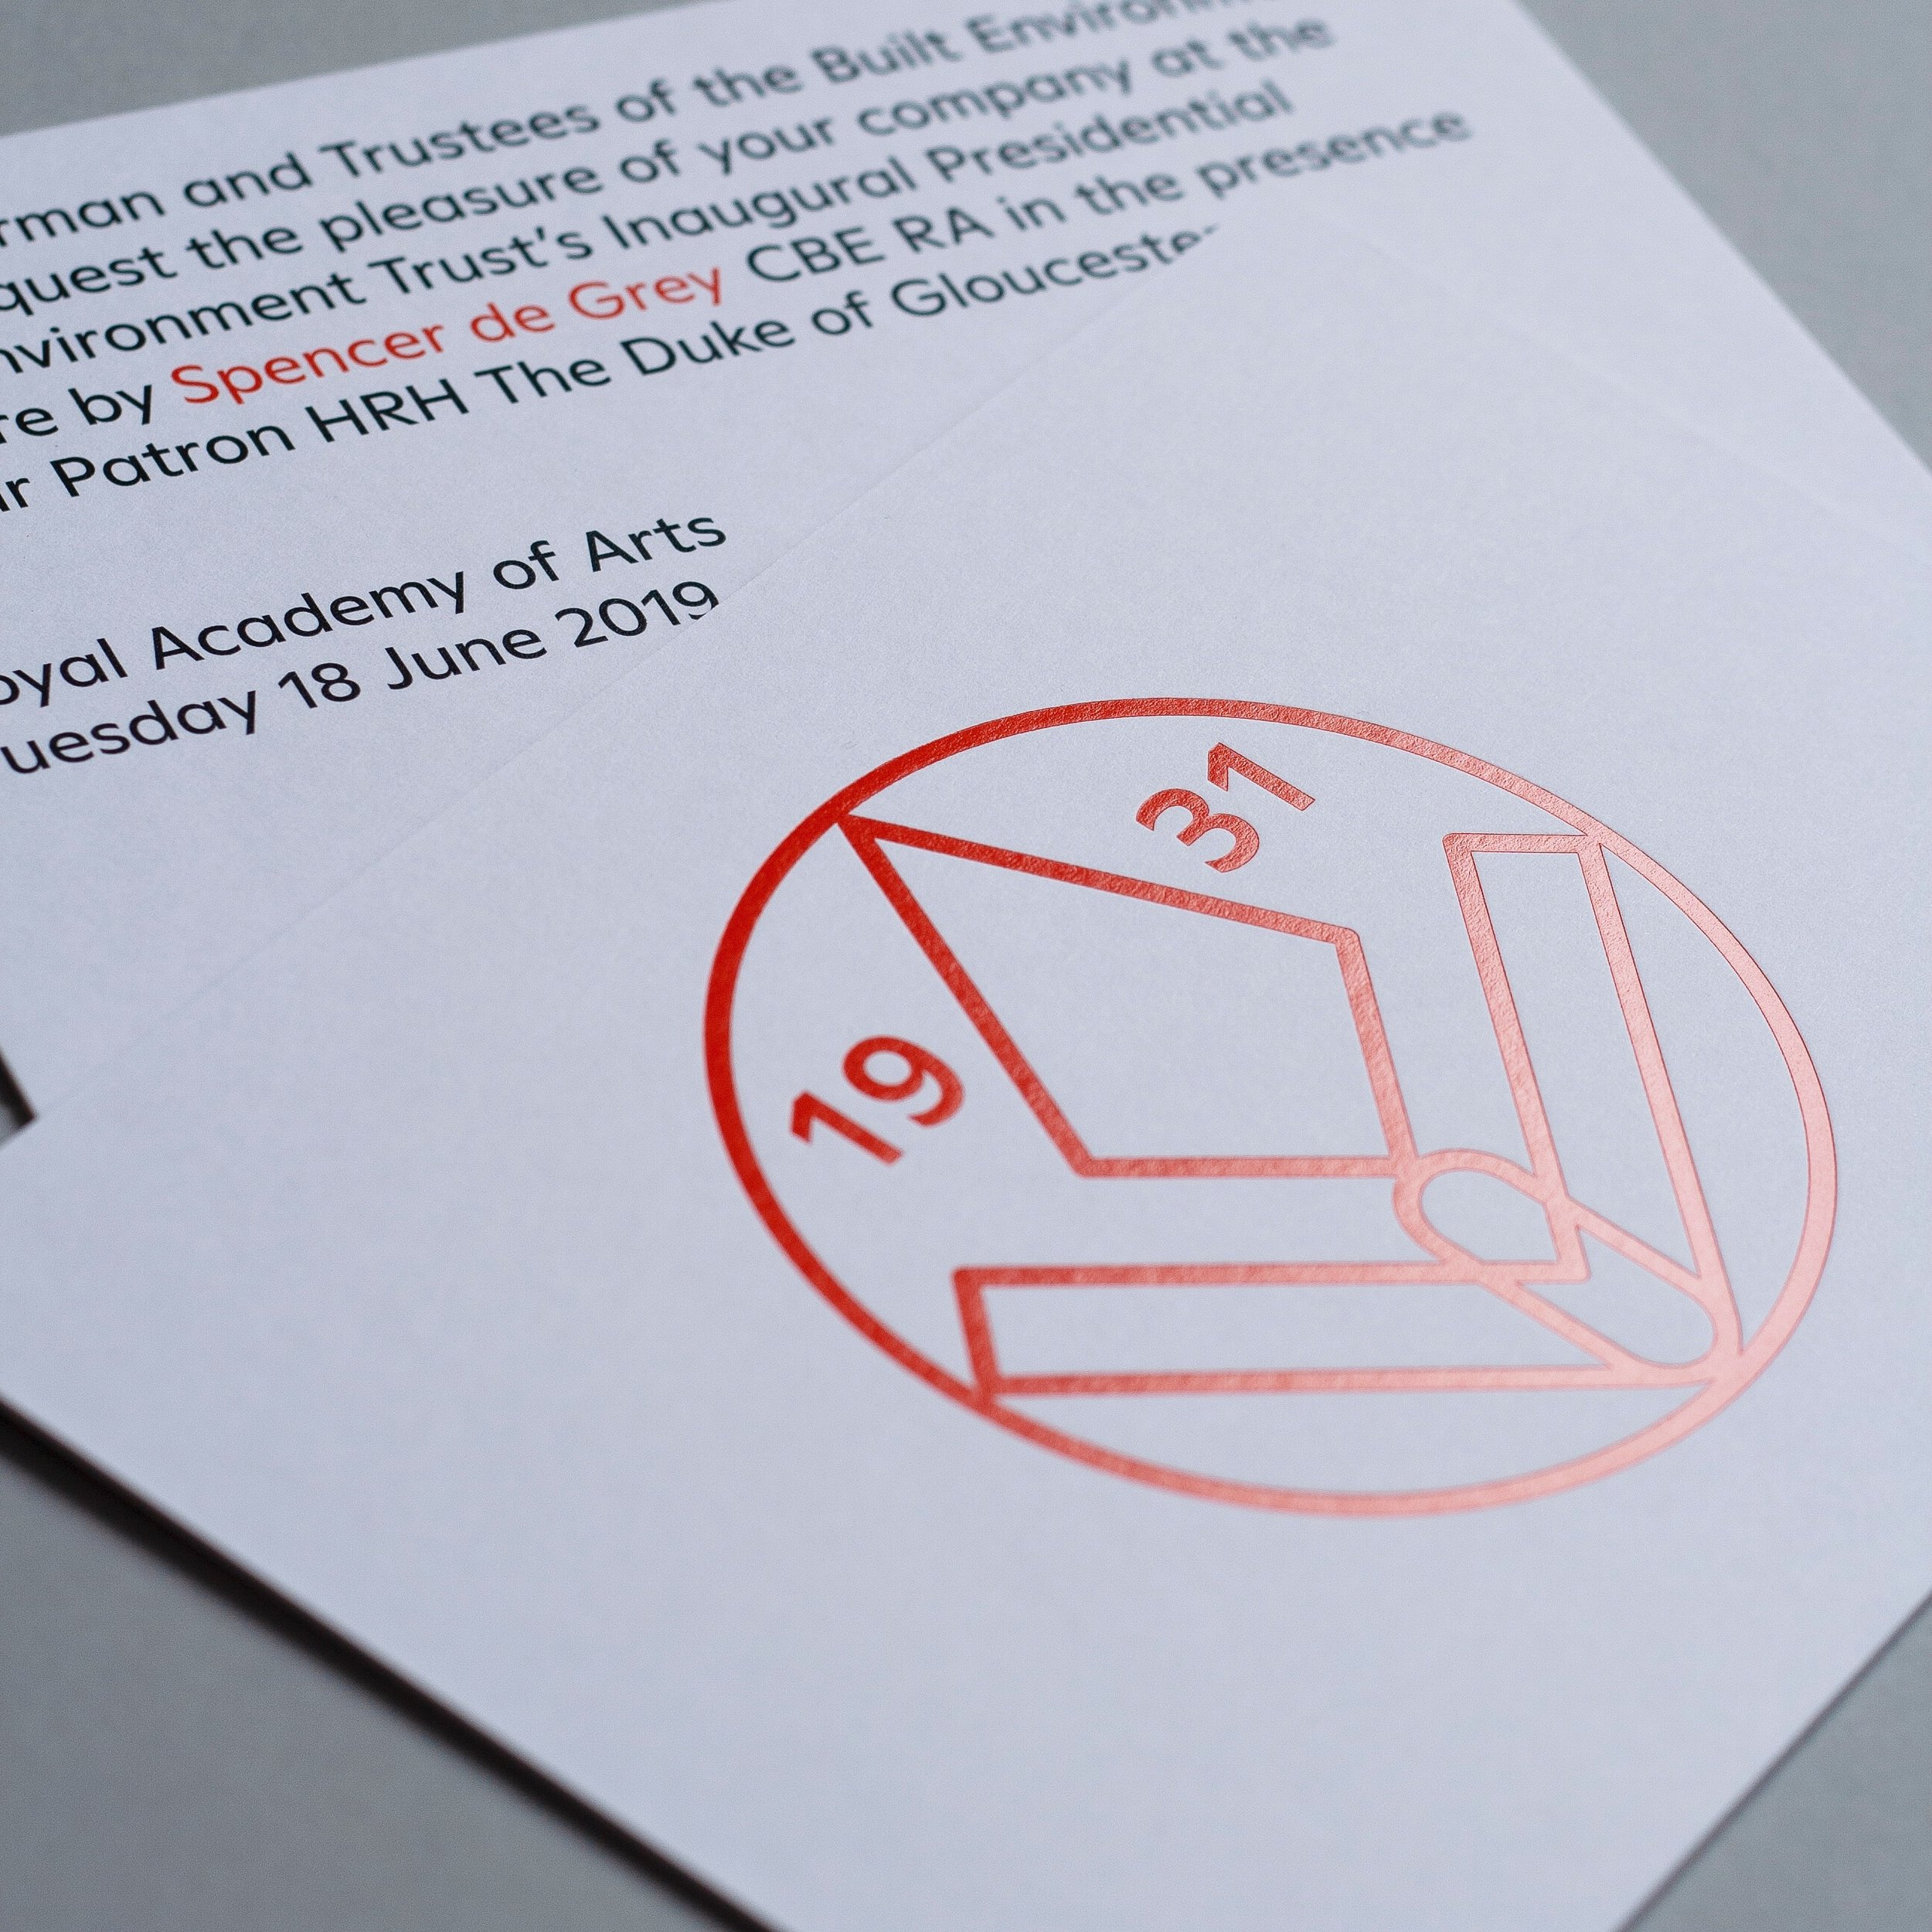 medium resolution of invitations printed for the built environment trust on lace white 1050gsm senses paper foil stamping